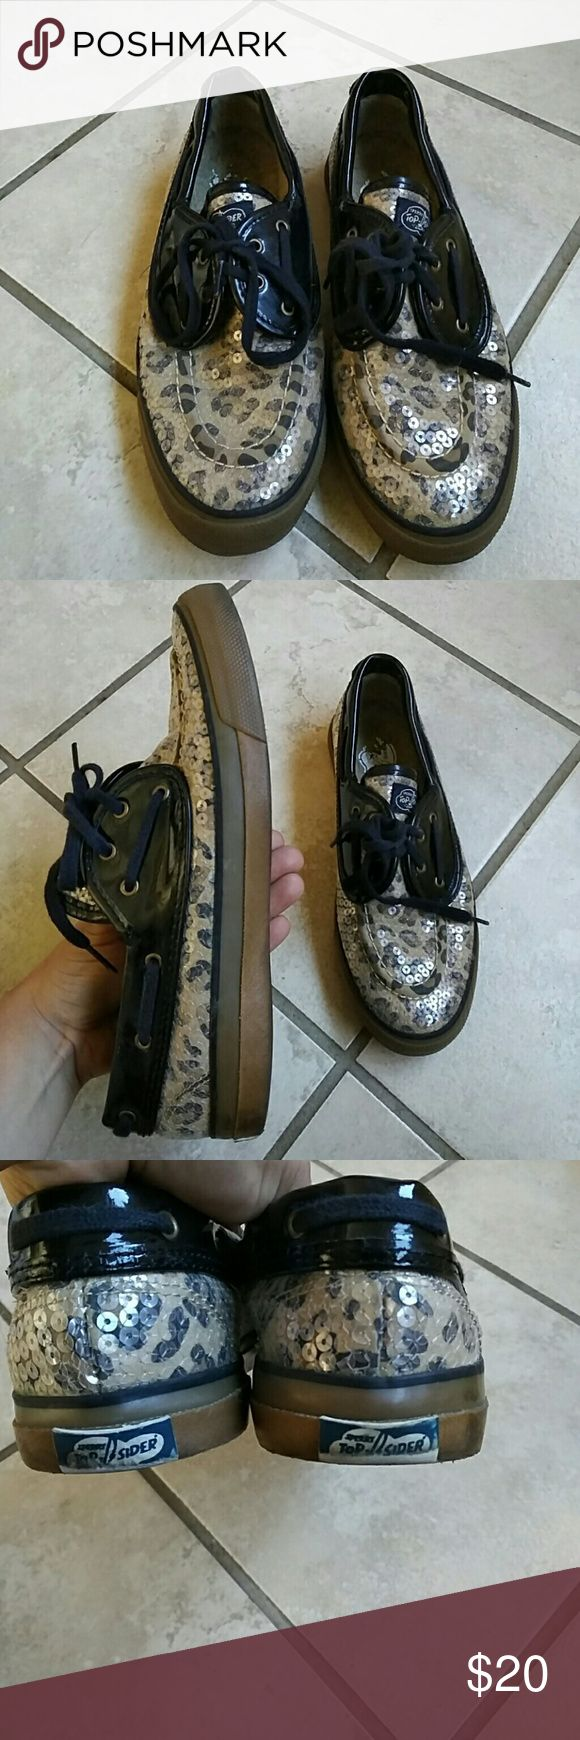 leopard sperry top sliders I love this pair of top sliders. Their so fun they have clear sequins on top that give a little reflection theyre adorable I purchased from another posher about a year ago never came around to wear them because they don't fit me.  Size 7.5 Sperry Shoes Flats & Loafers